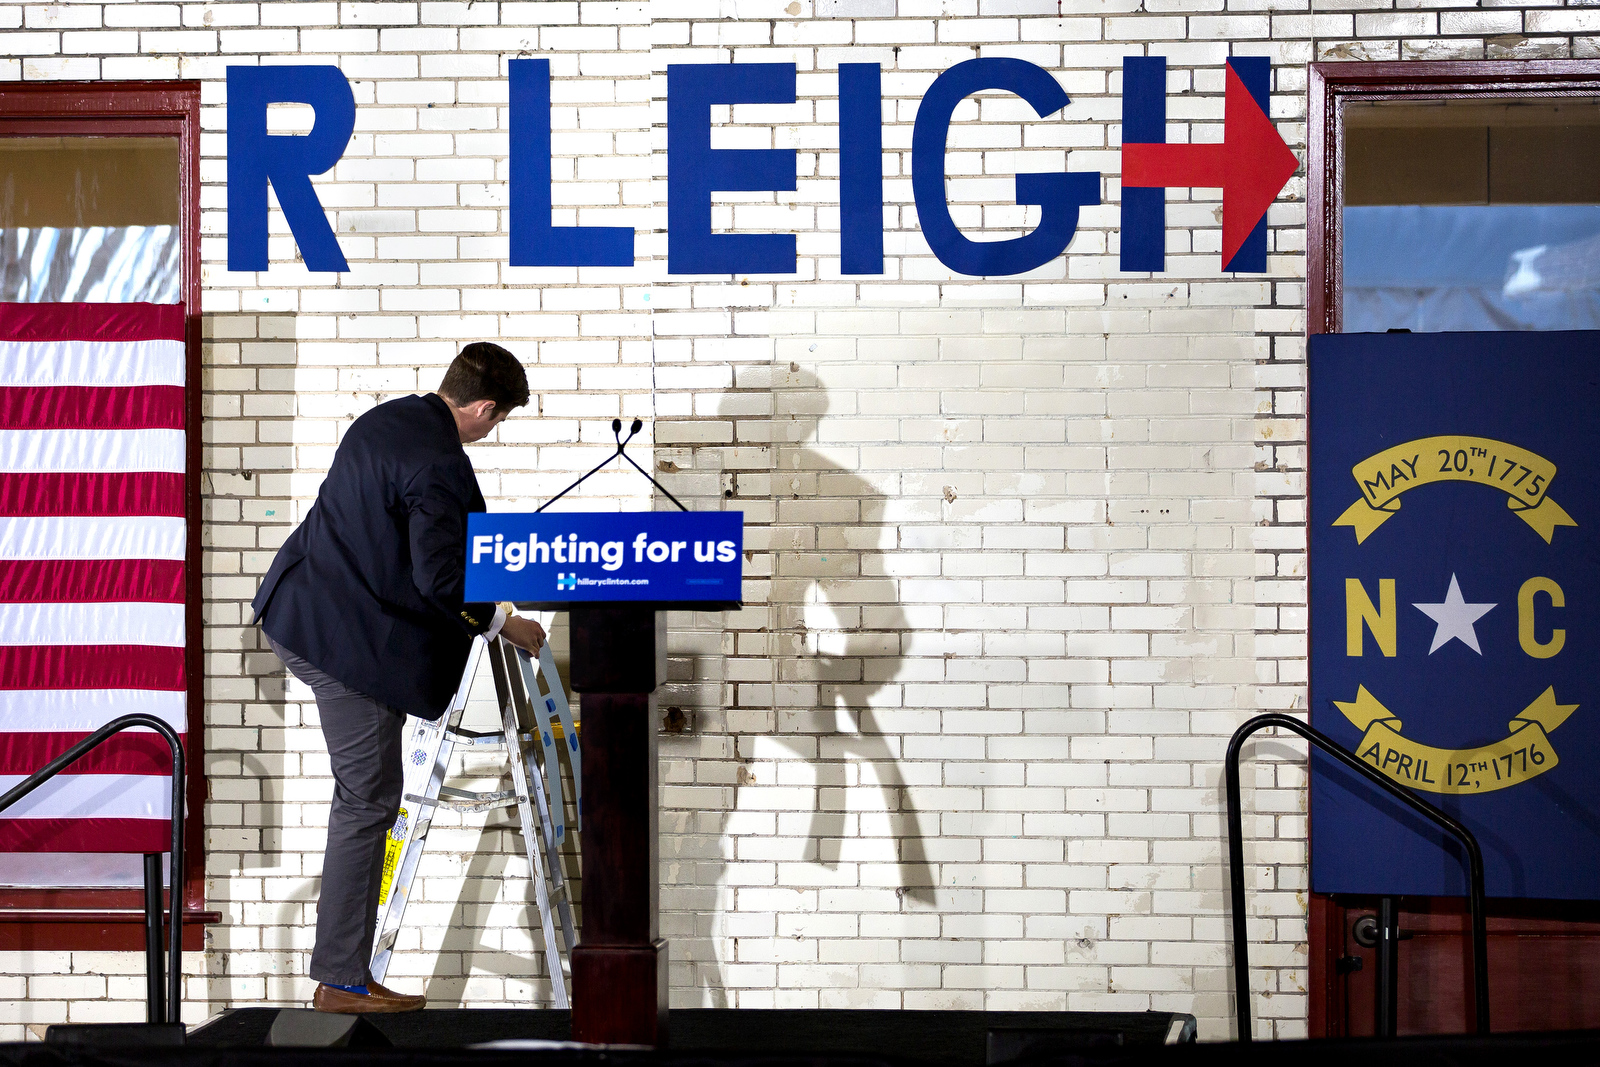 Paxton Howard, 25, of Raleigh, fixes a sign before Former President Bill Clinton speaks at a Get Out the Vote event to promote early voting for Hillary Clinton in Raleigh.